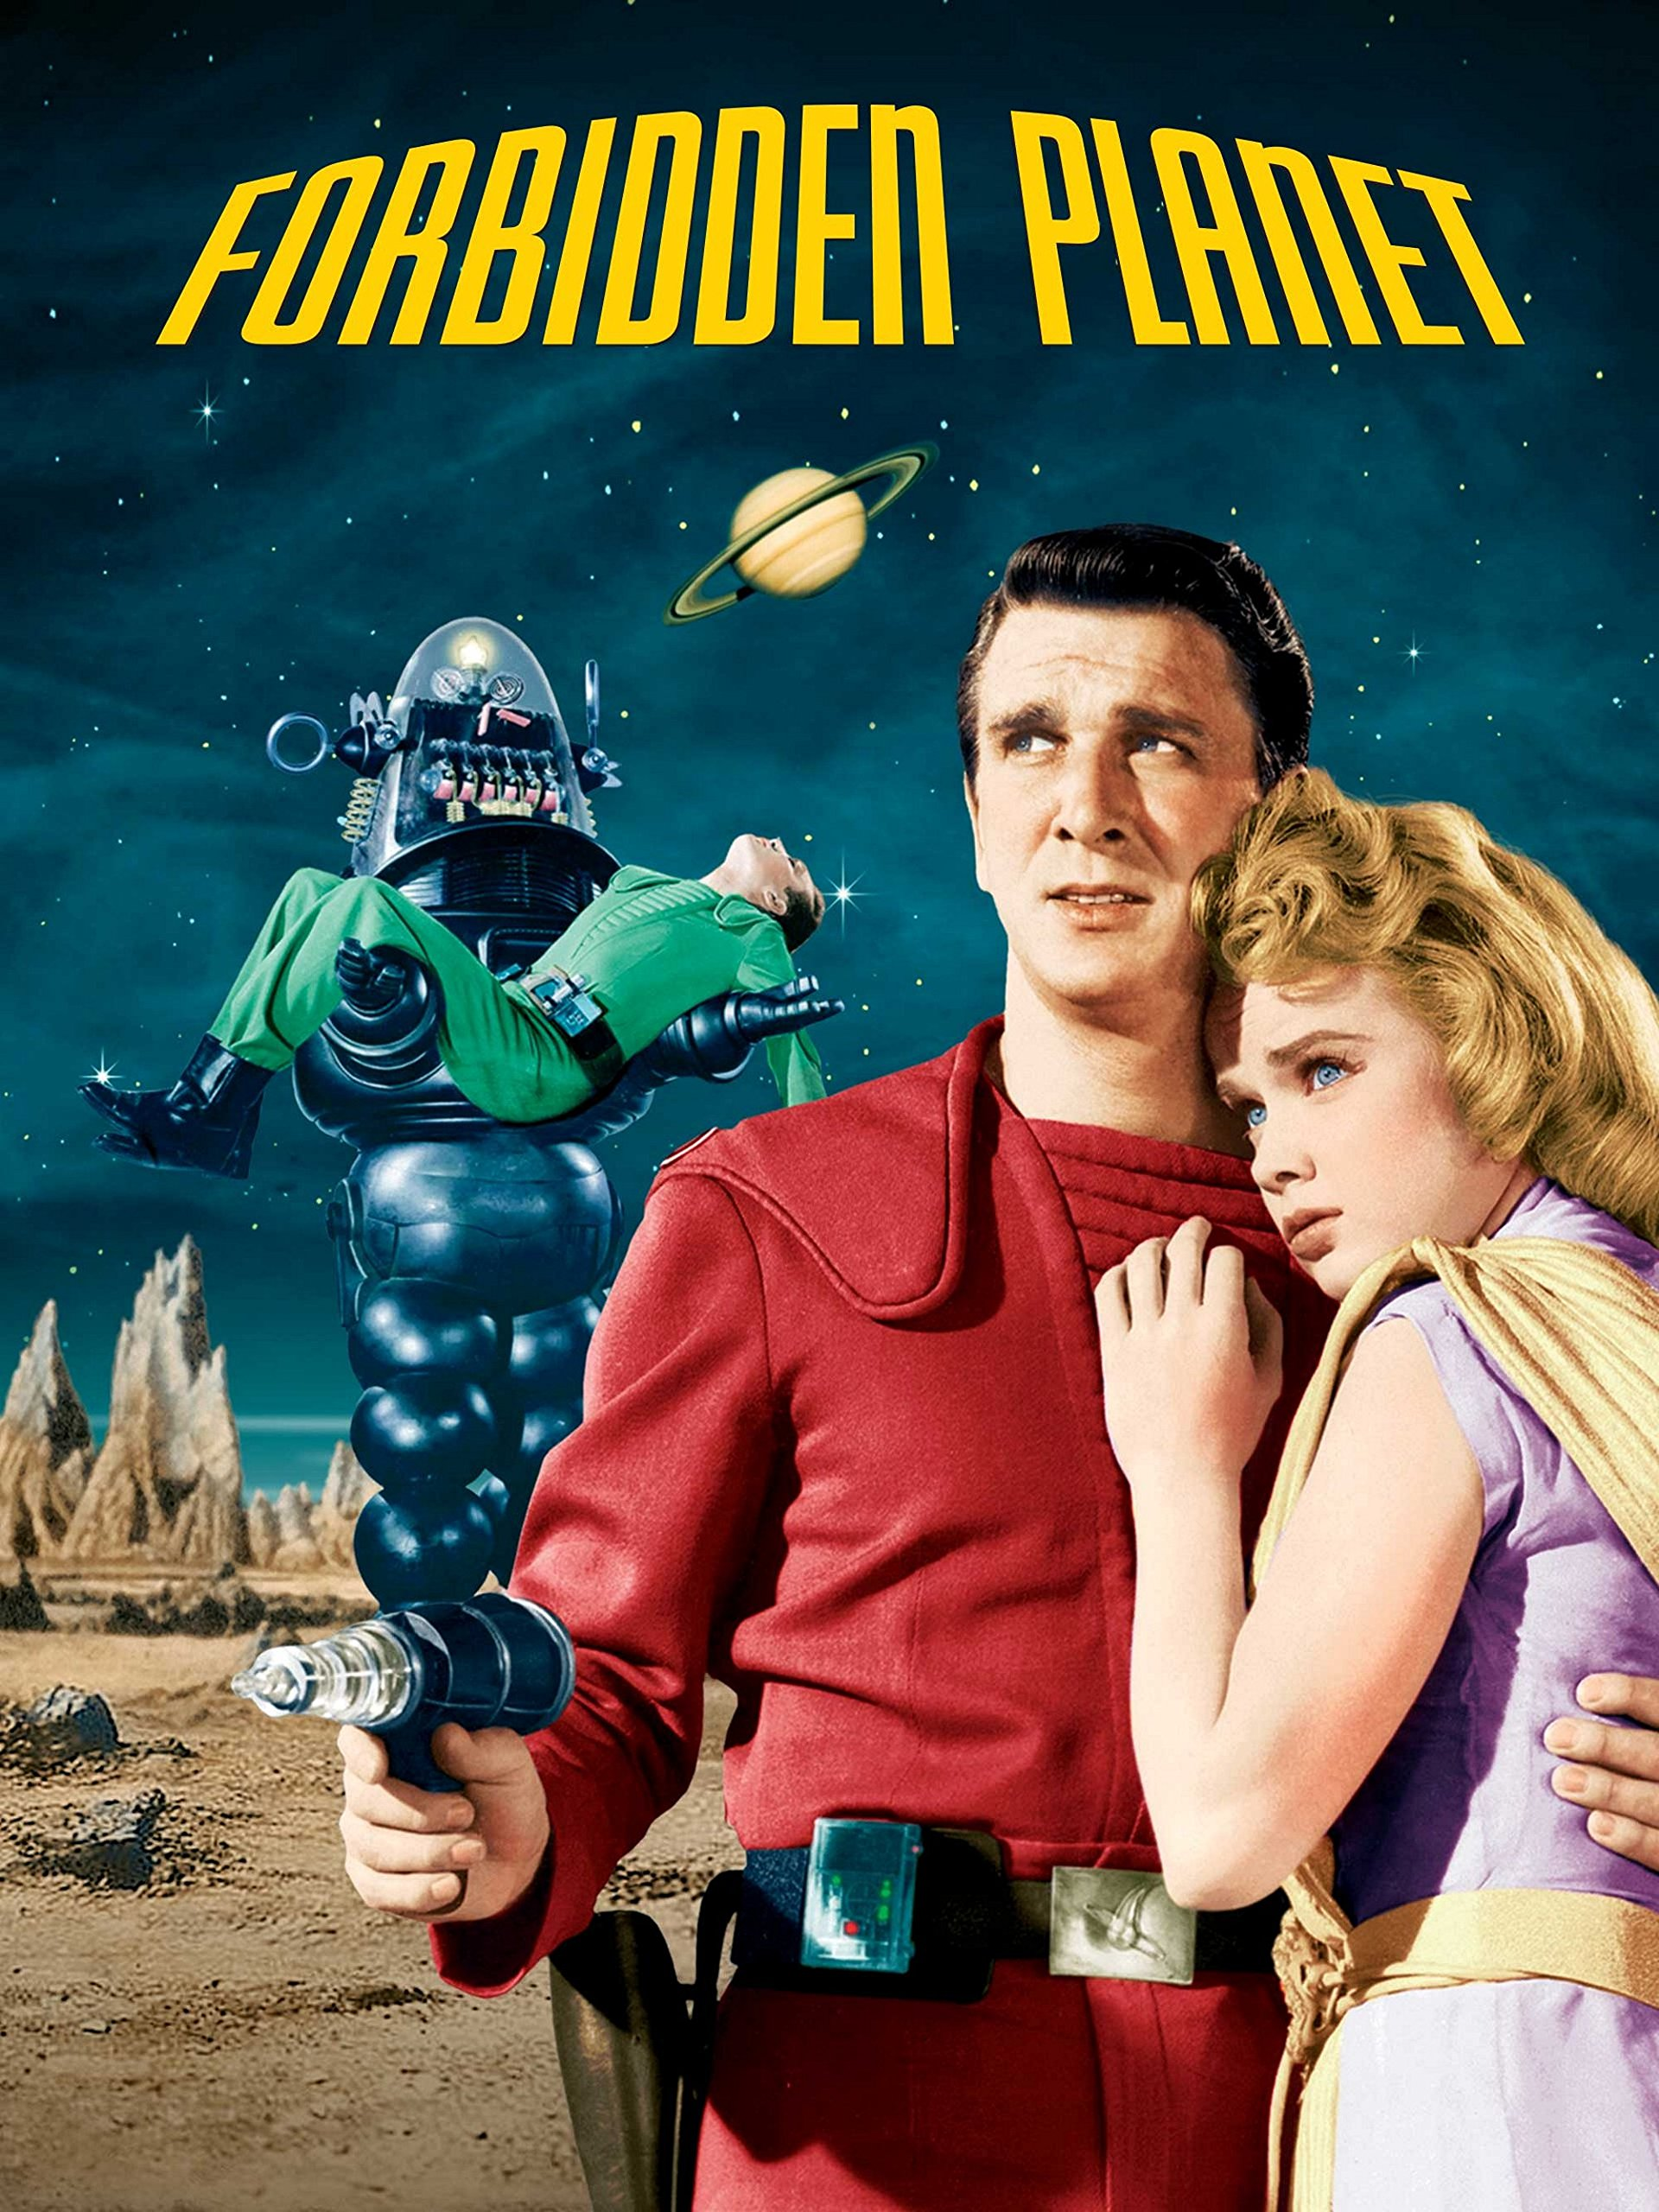 Forbidden Planet Leslie Nielsen with copy Auto Poster